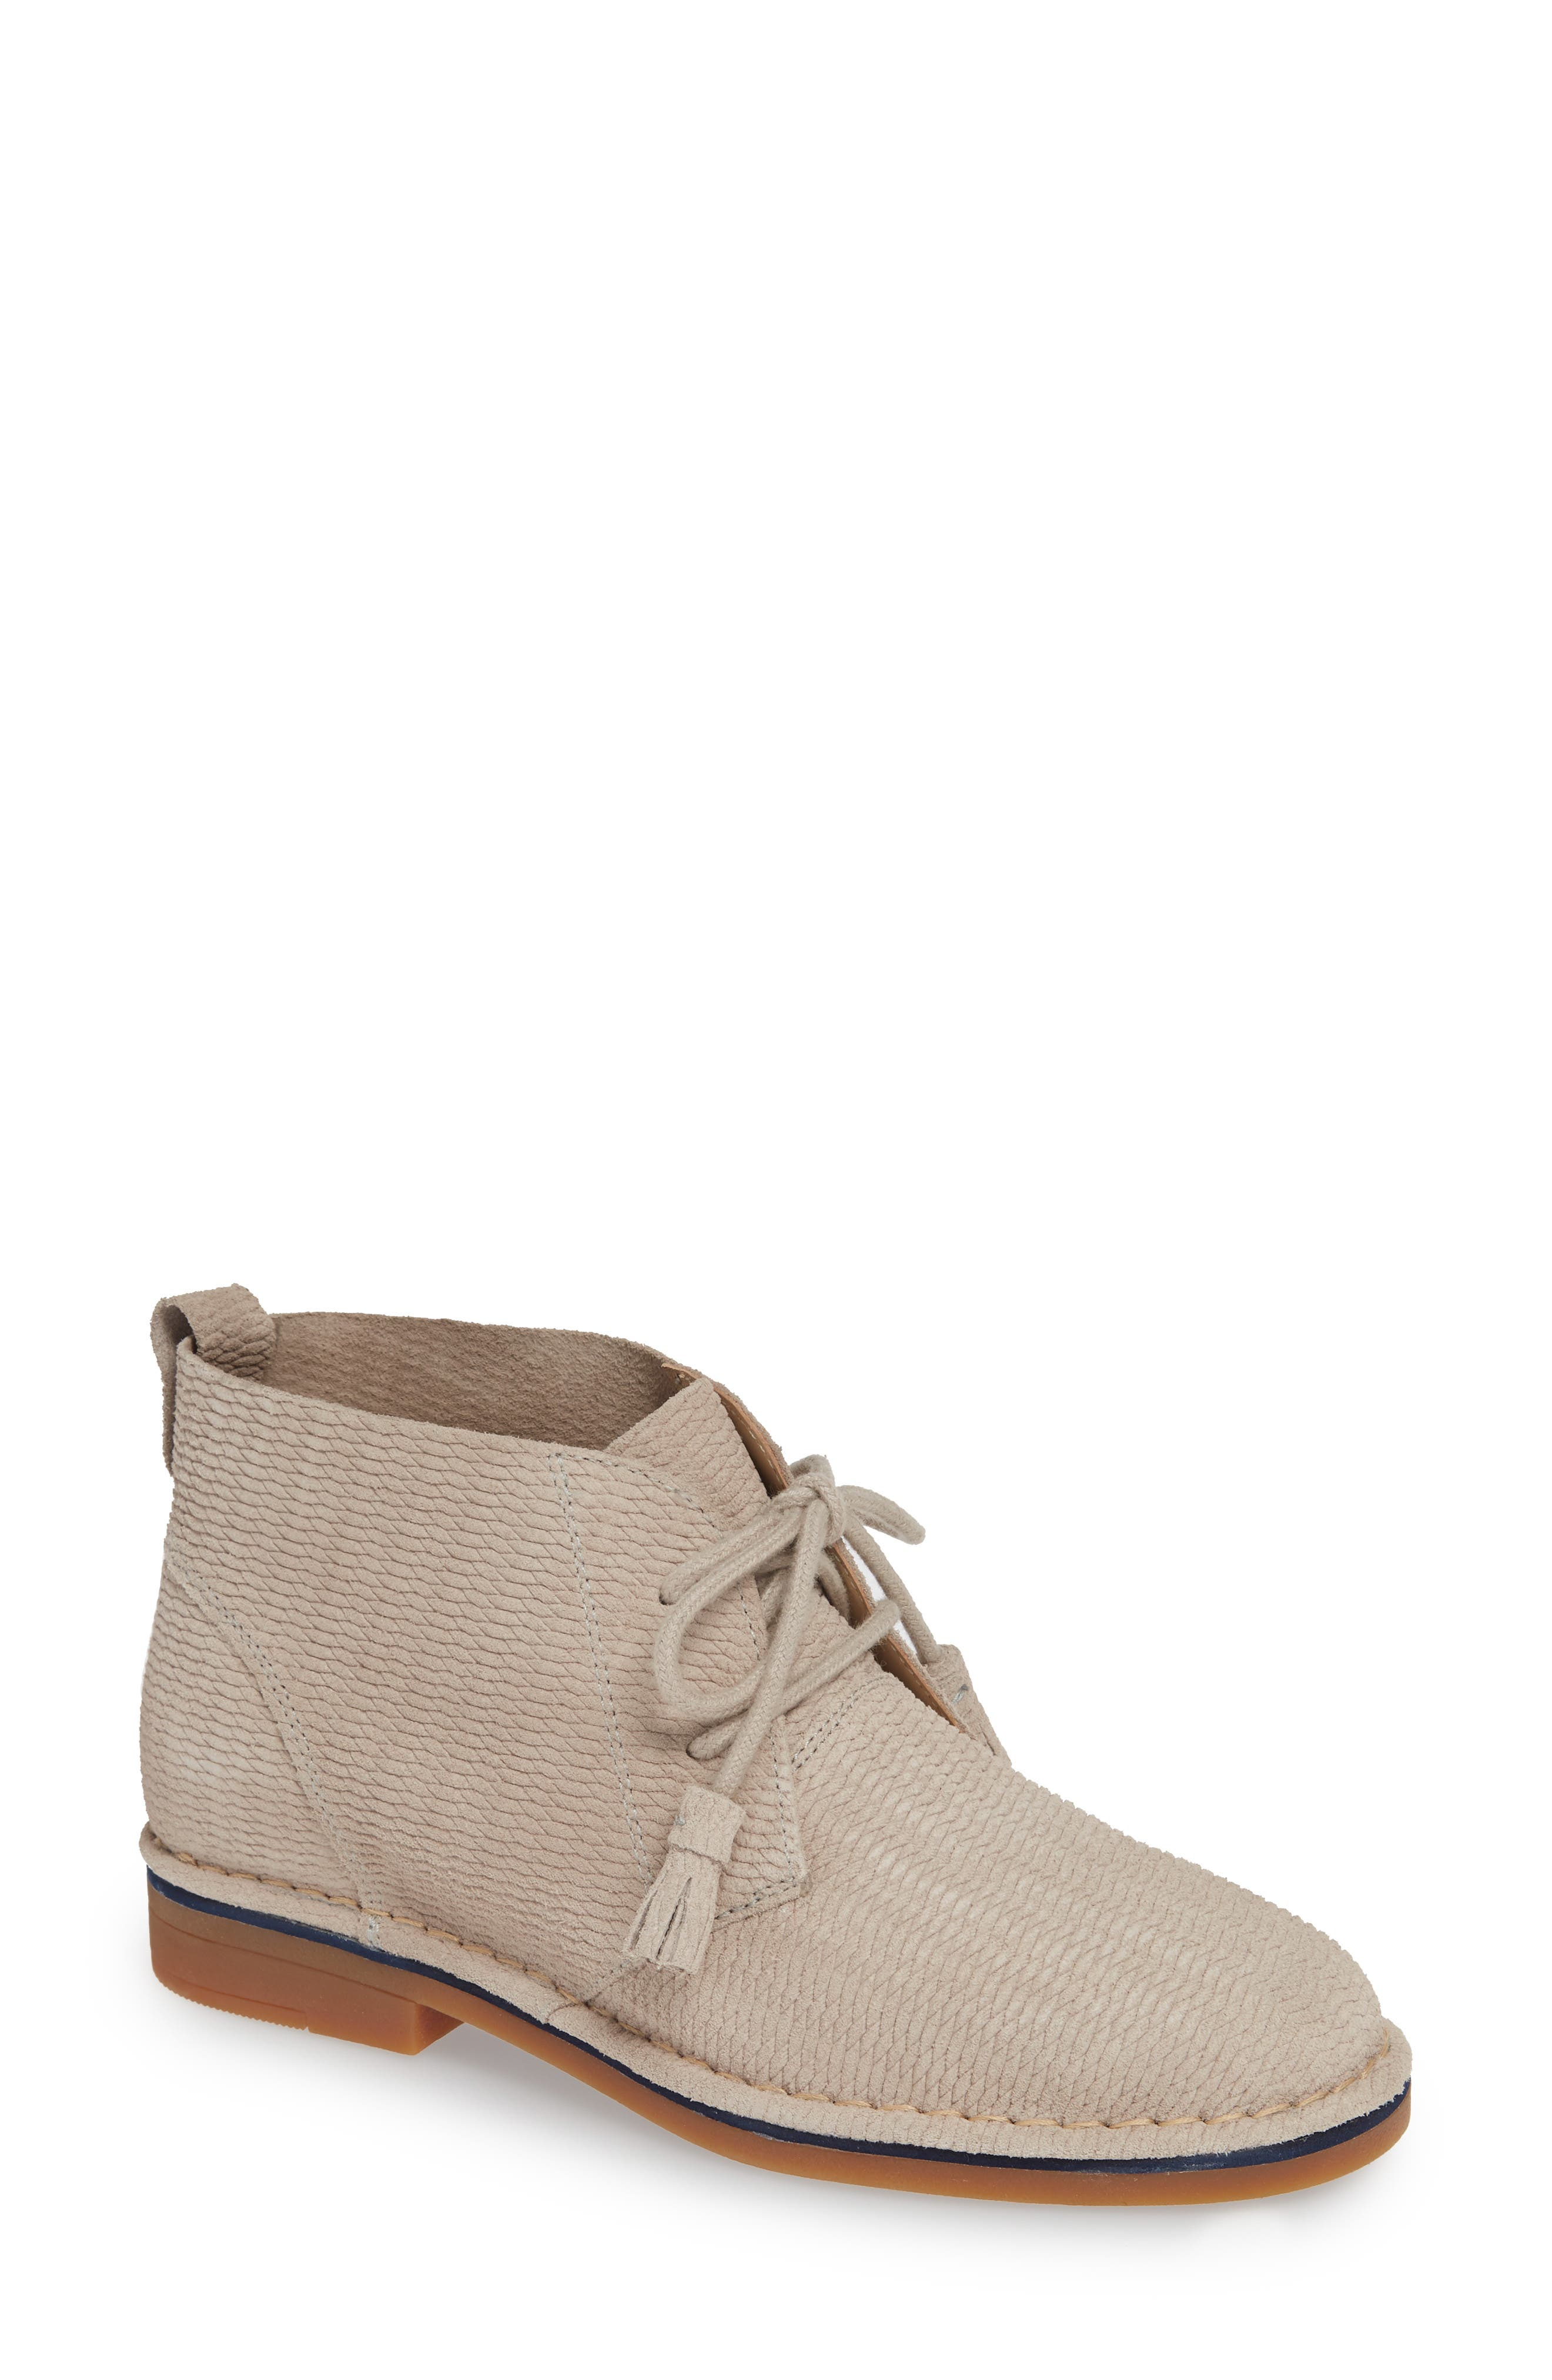 Hush Puppies Cyra Catelyn Chukka Boot, Grey